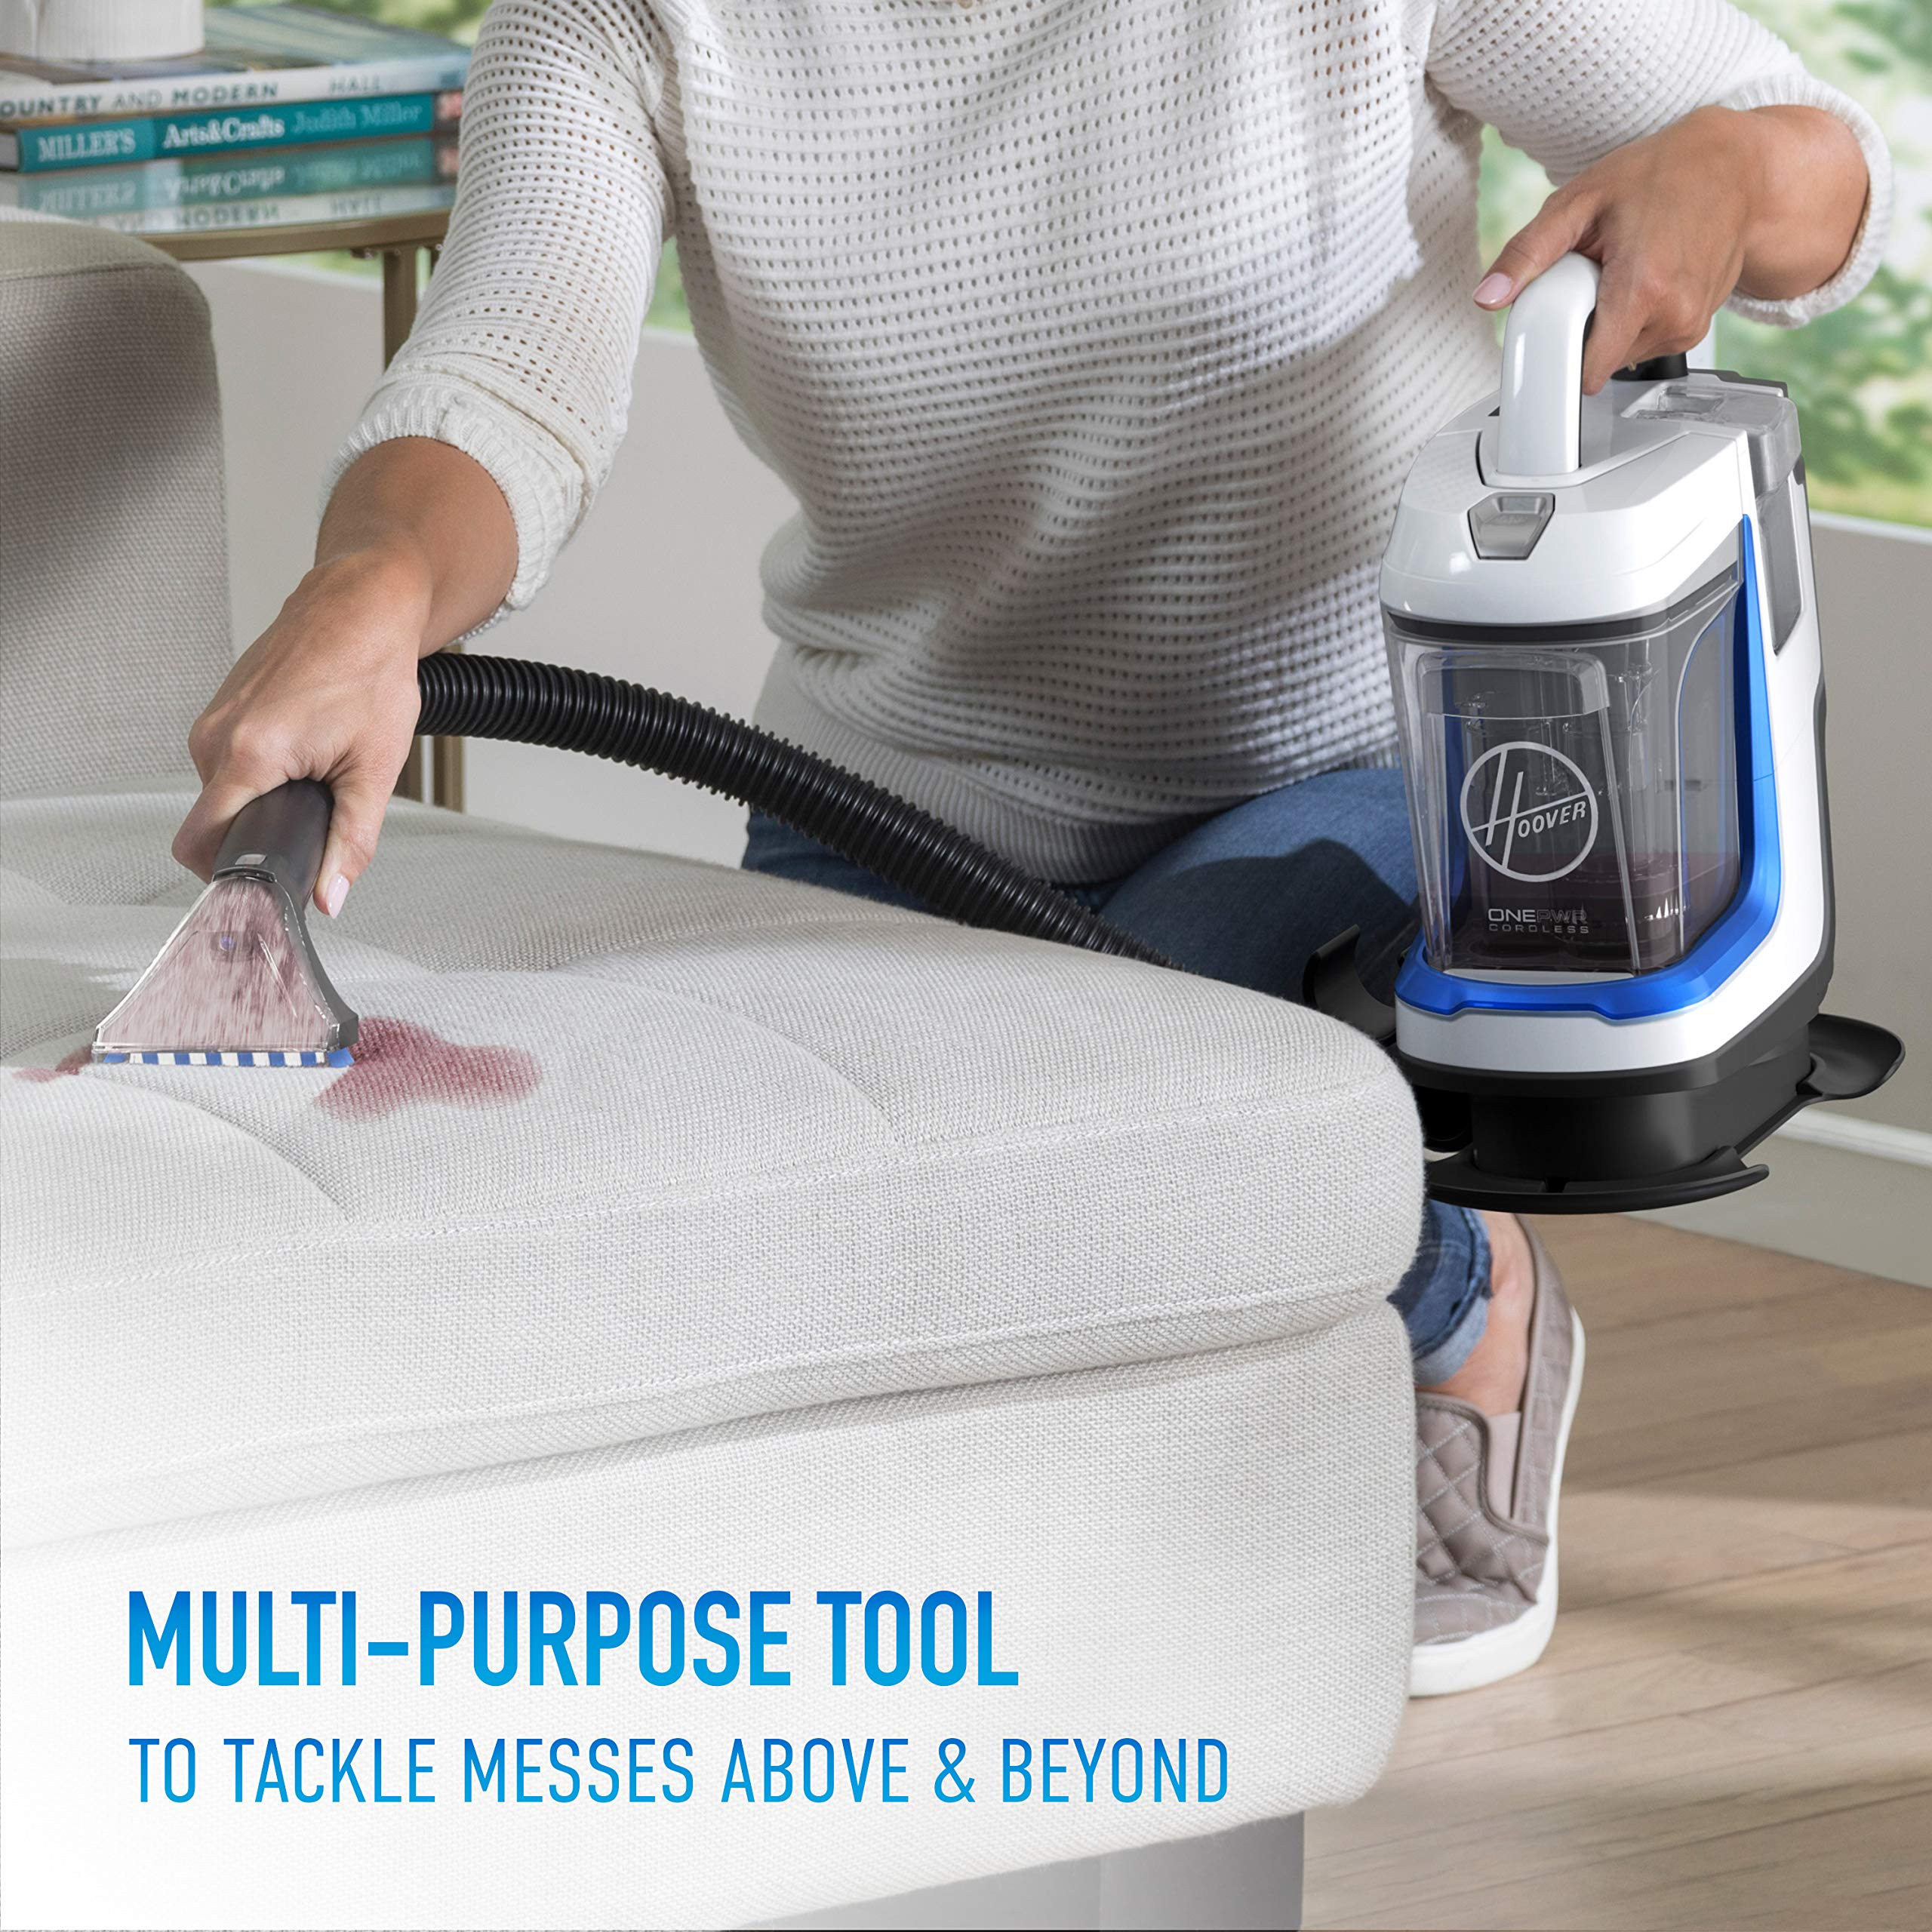 Hoover ONEPWR Spotless GO Cordless Carpet and Upholstery Cleaner, Portable, Lightweight, BH12001, White by Hoover (Image #5)